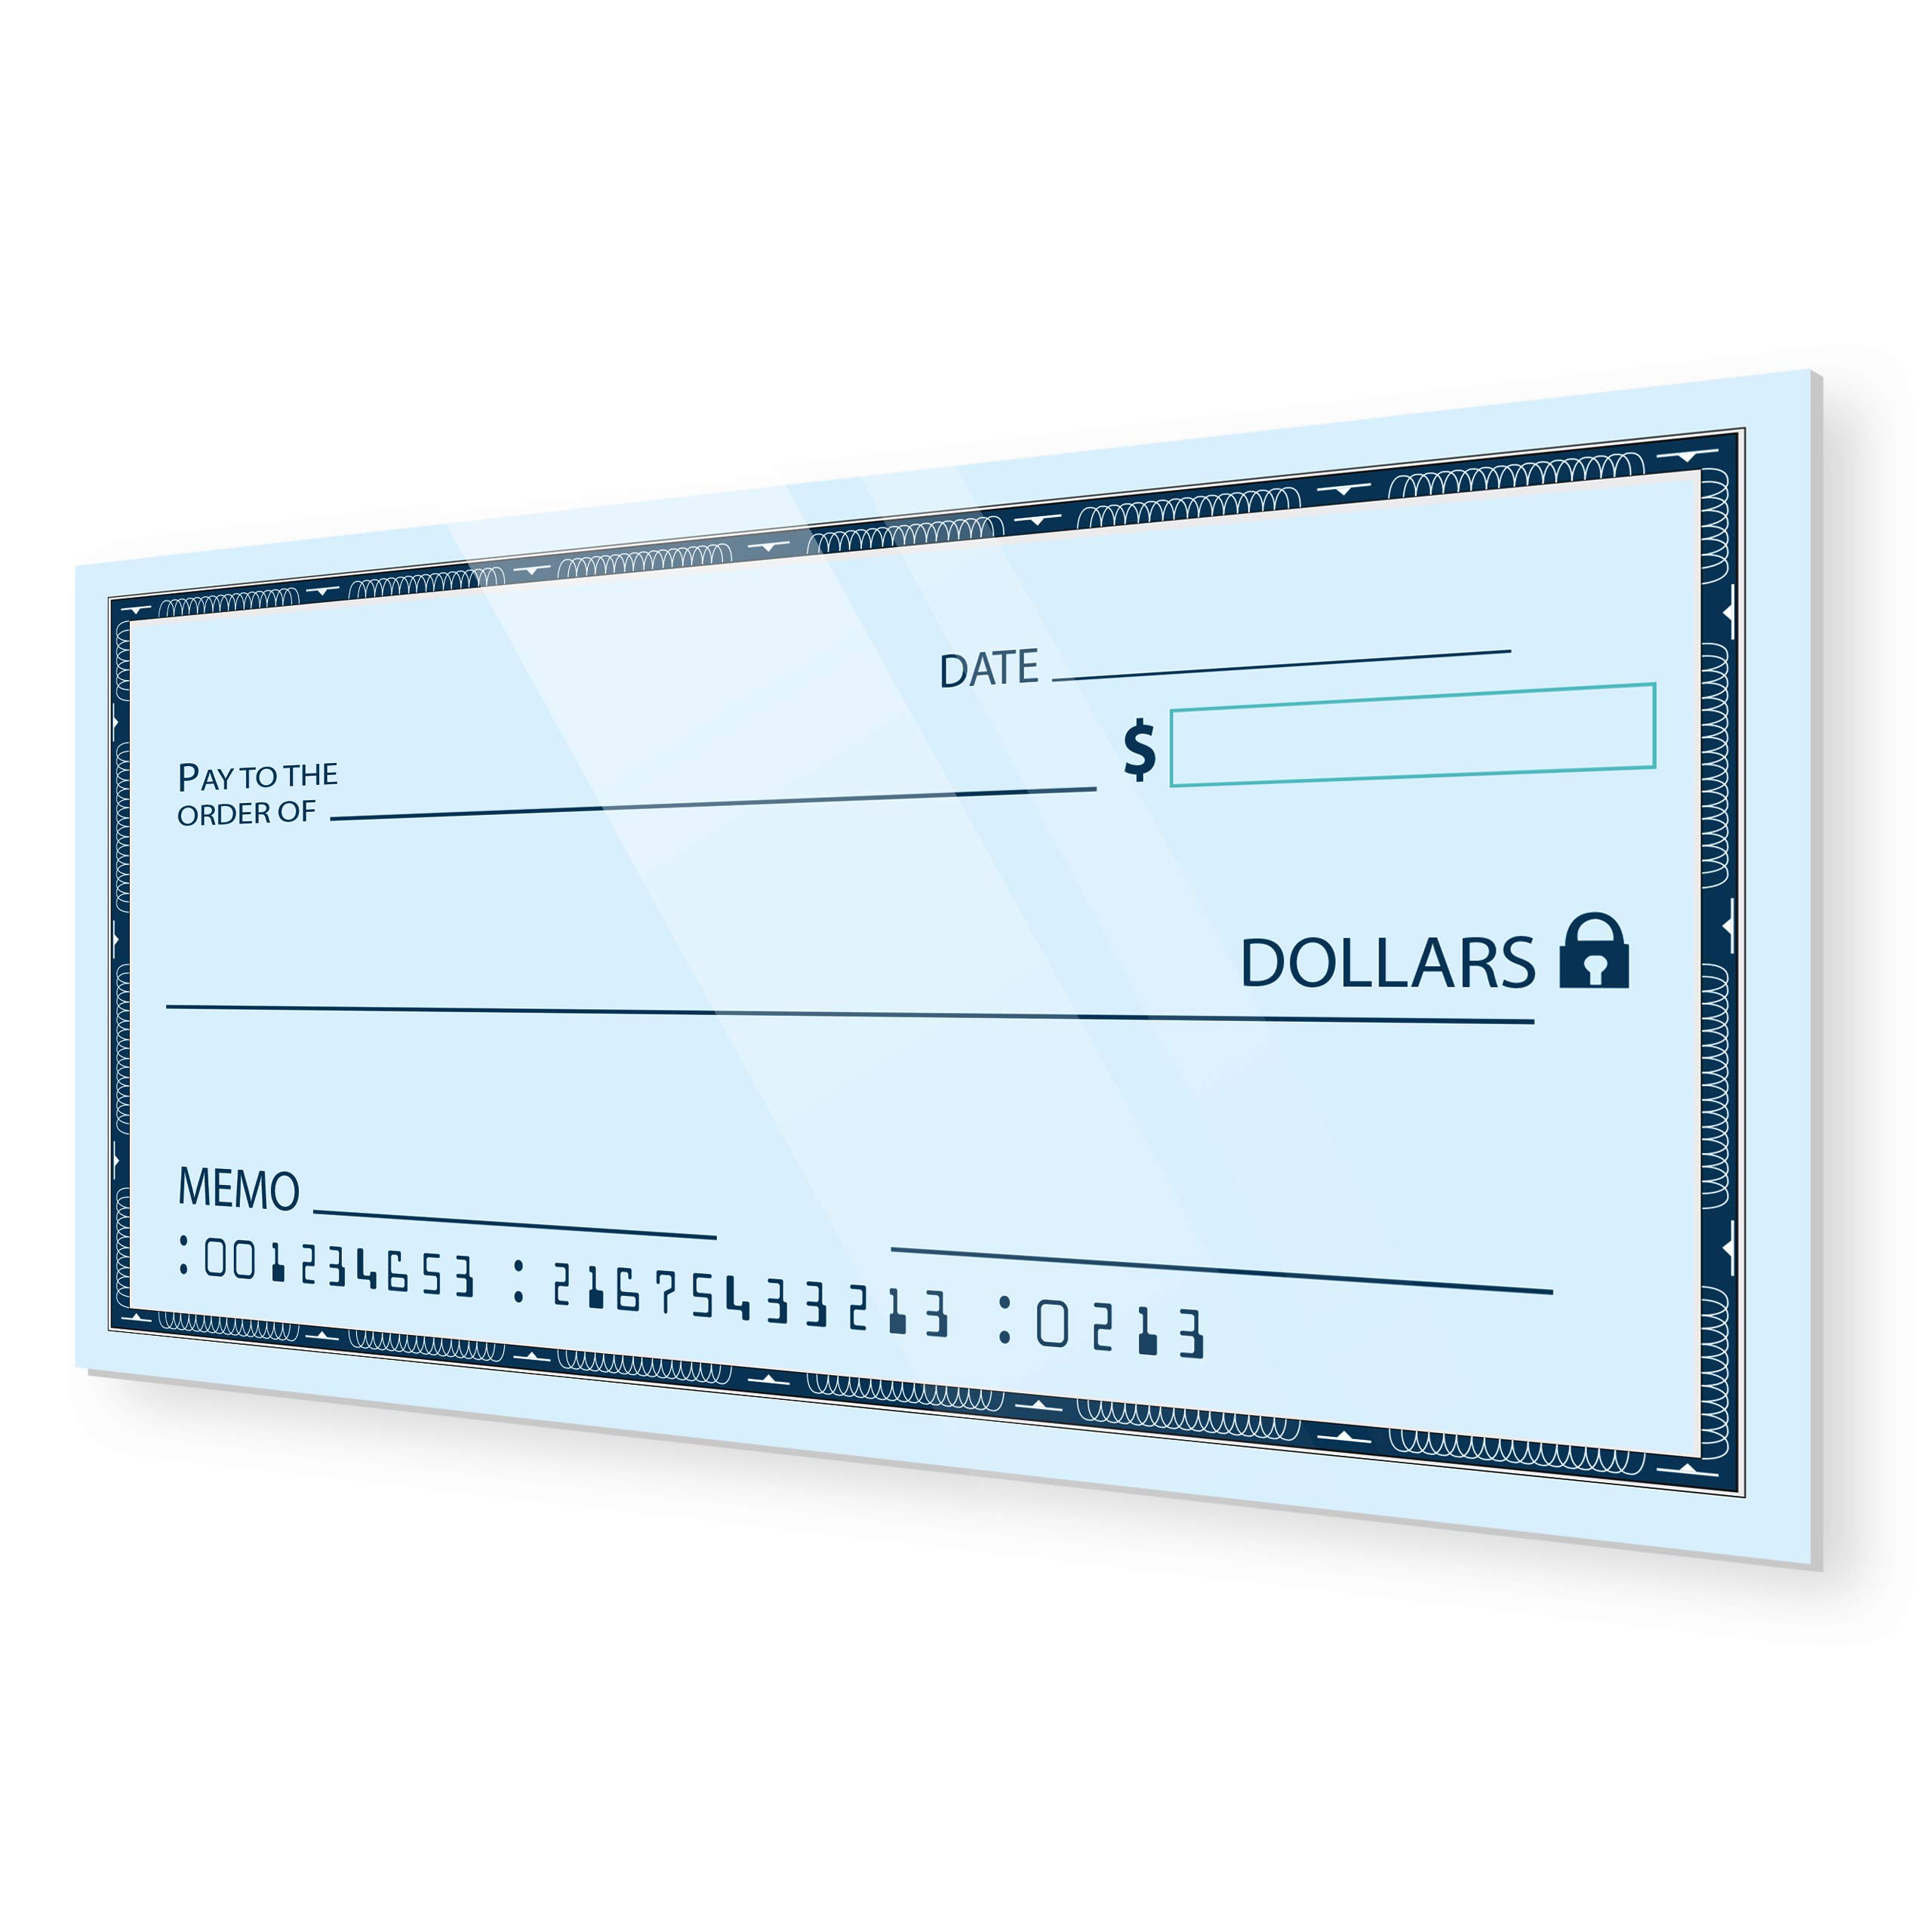 [Dry Erase] 24'' x 48'' Oversize Giant Check - Large Fake Checks - Reusable Big Blank Presentation Check for Charity Donation, Lottery, Raffle, Novelty, Fundraiser, Endowment and Gag Gift [Pack of 1] by JJ CARE